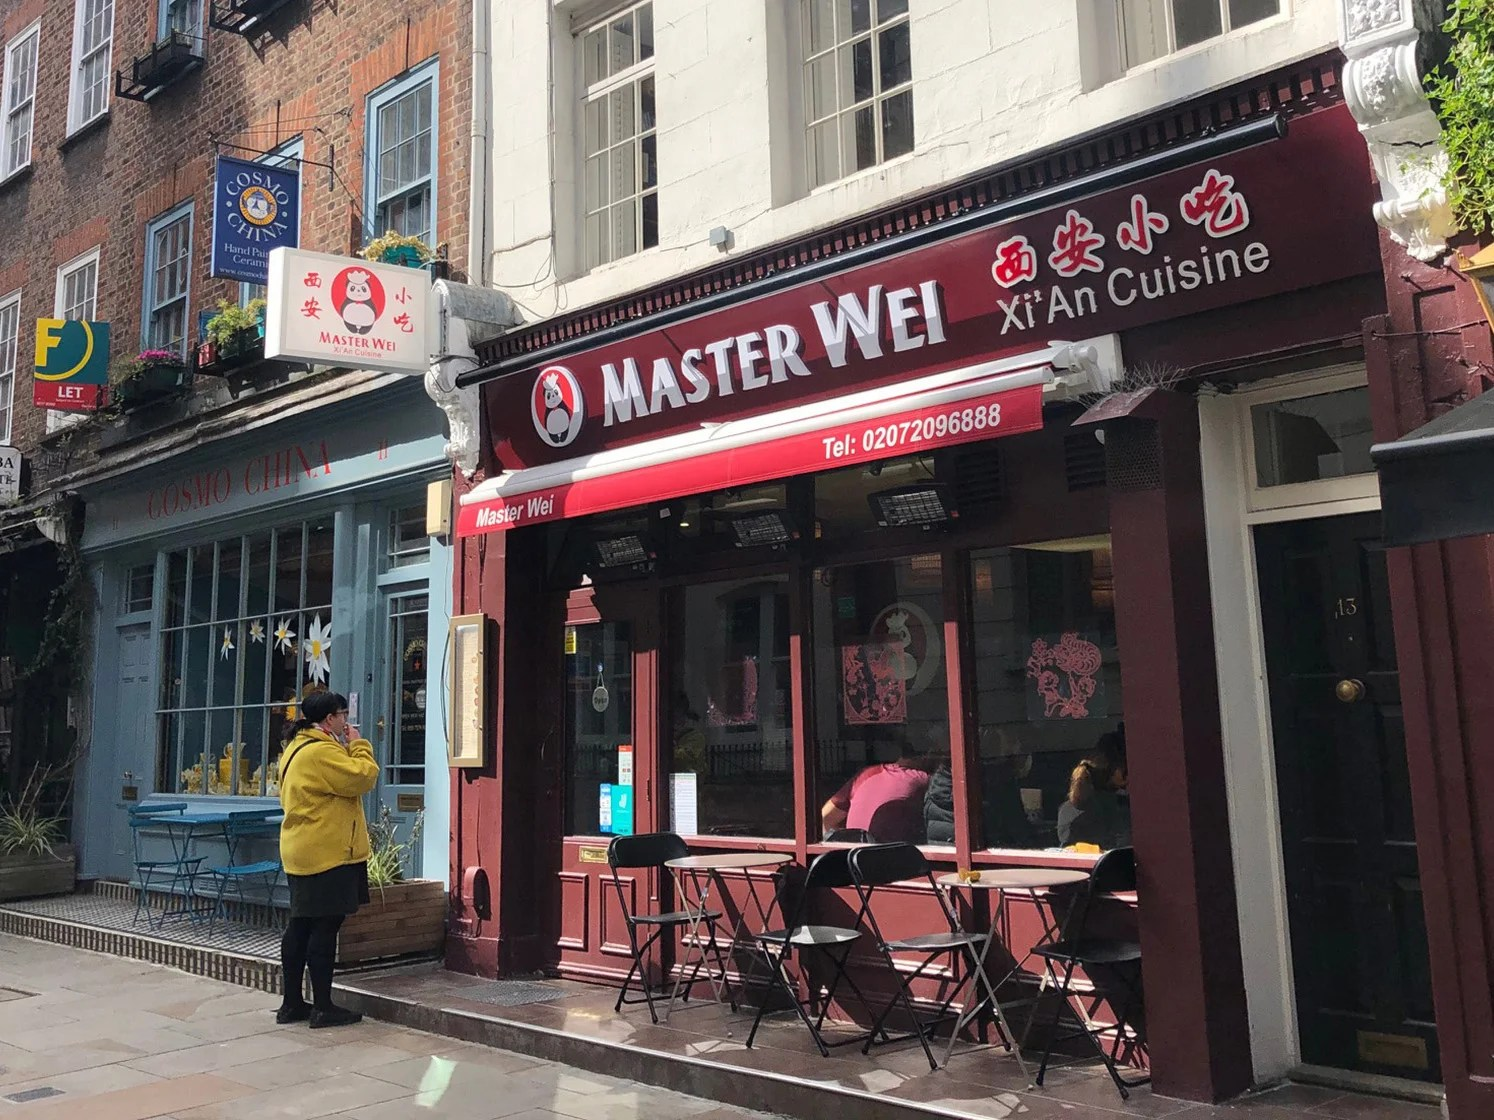 Cuisine But Master Wei Restaurant Review It S Not Quite The Master Of